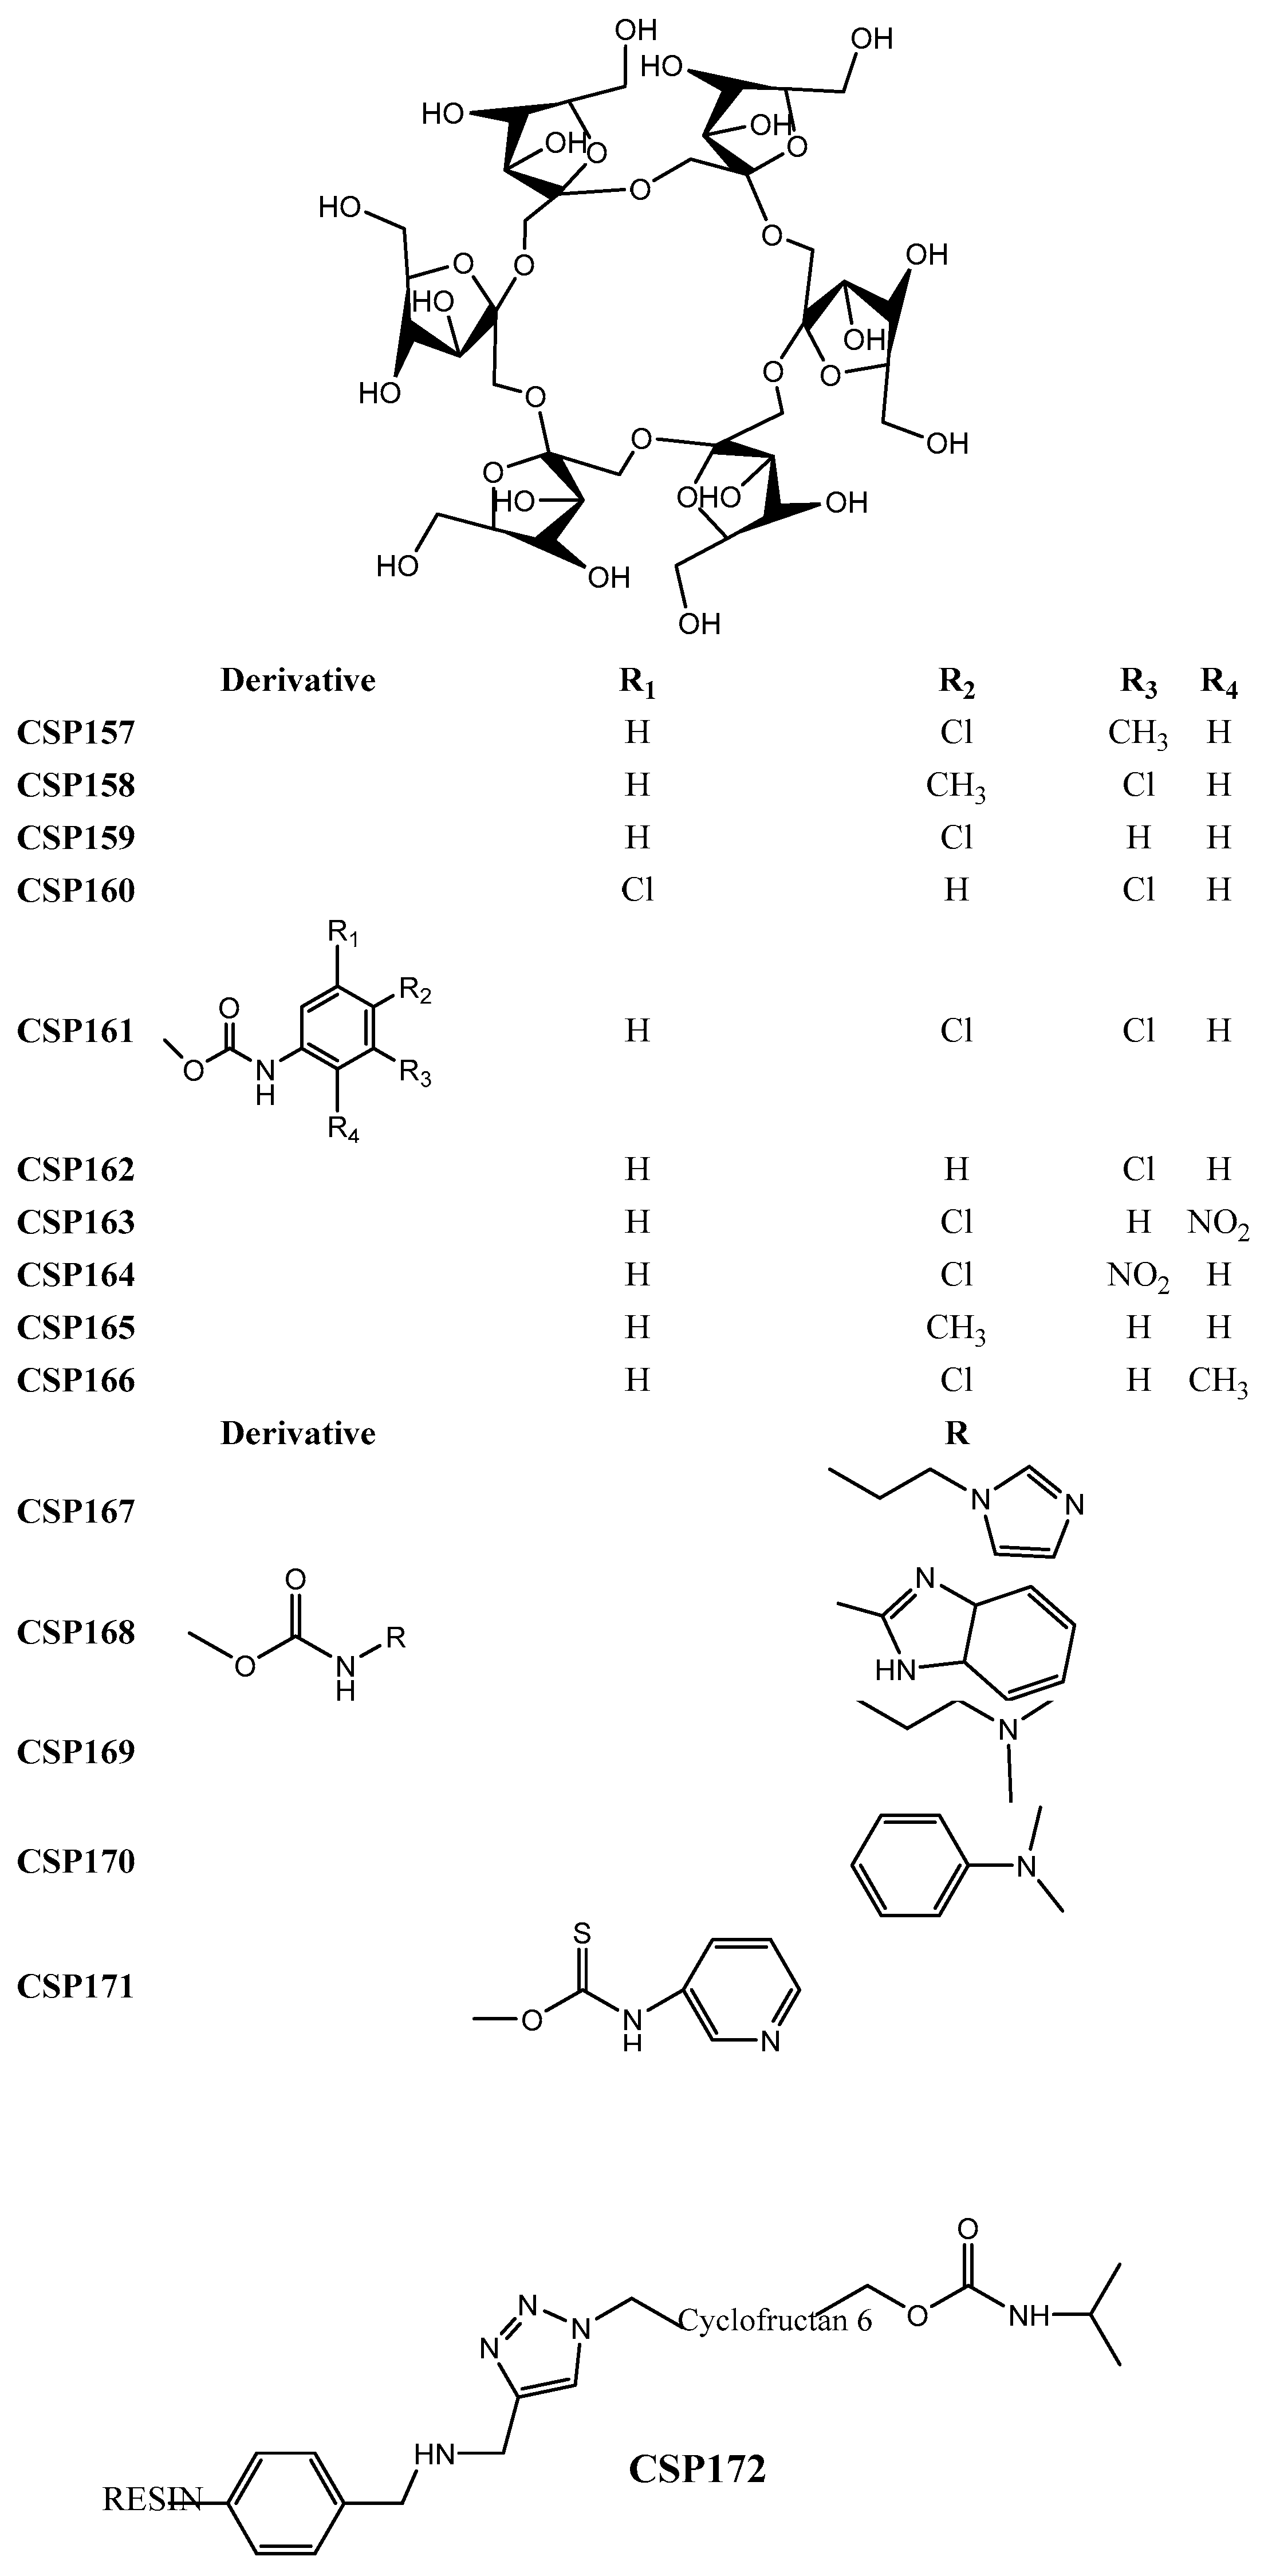 Molecules | Free Full-Text | Chiral Stationary Phases for Liquid